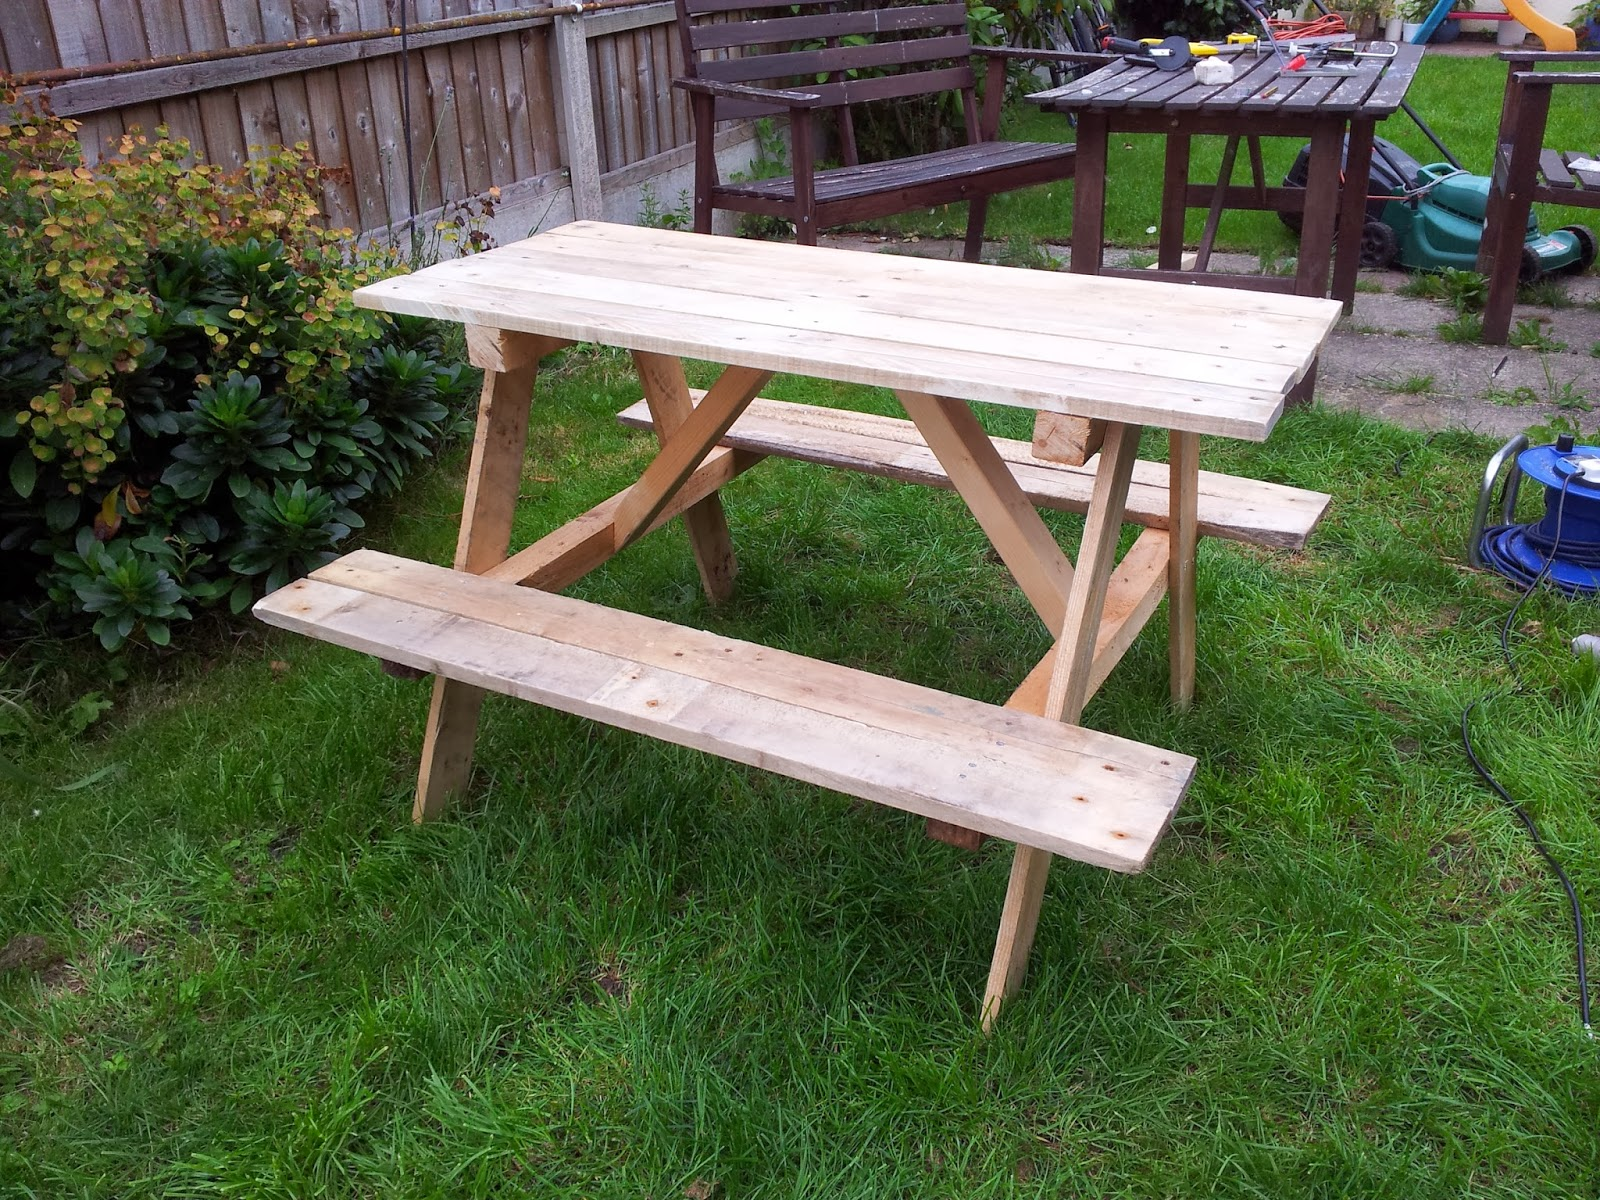 have seen loads of projects on Pintrest of things to do with pallet ...